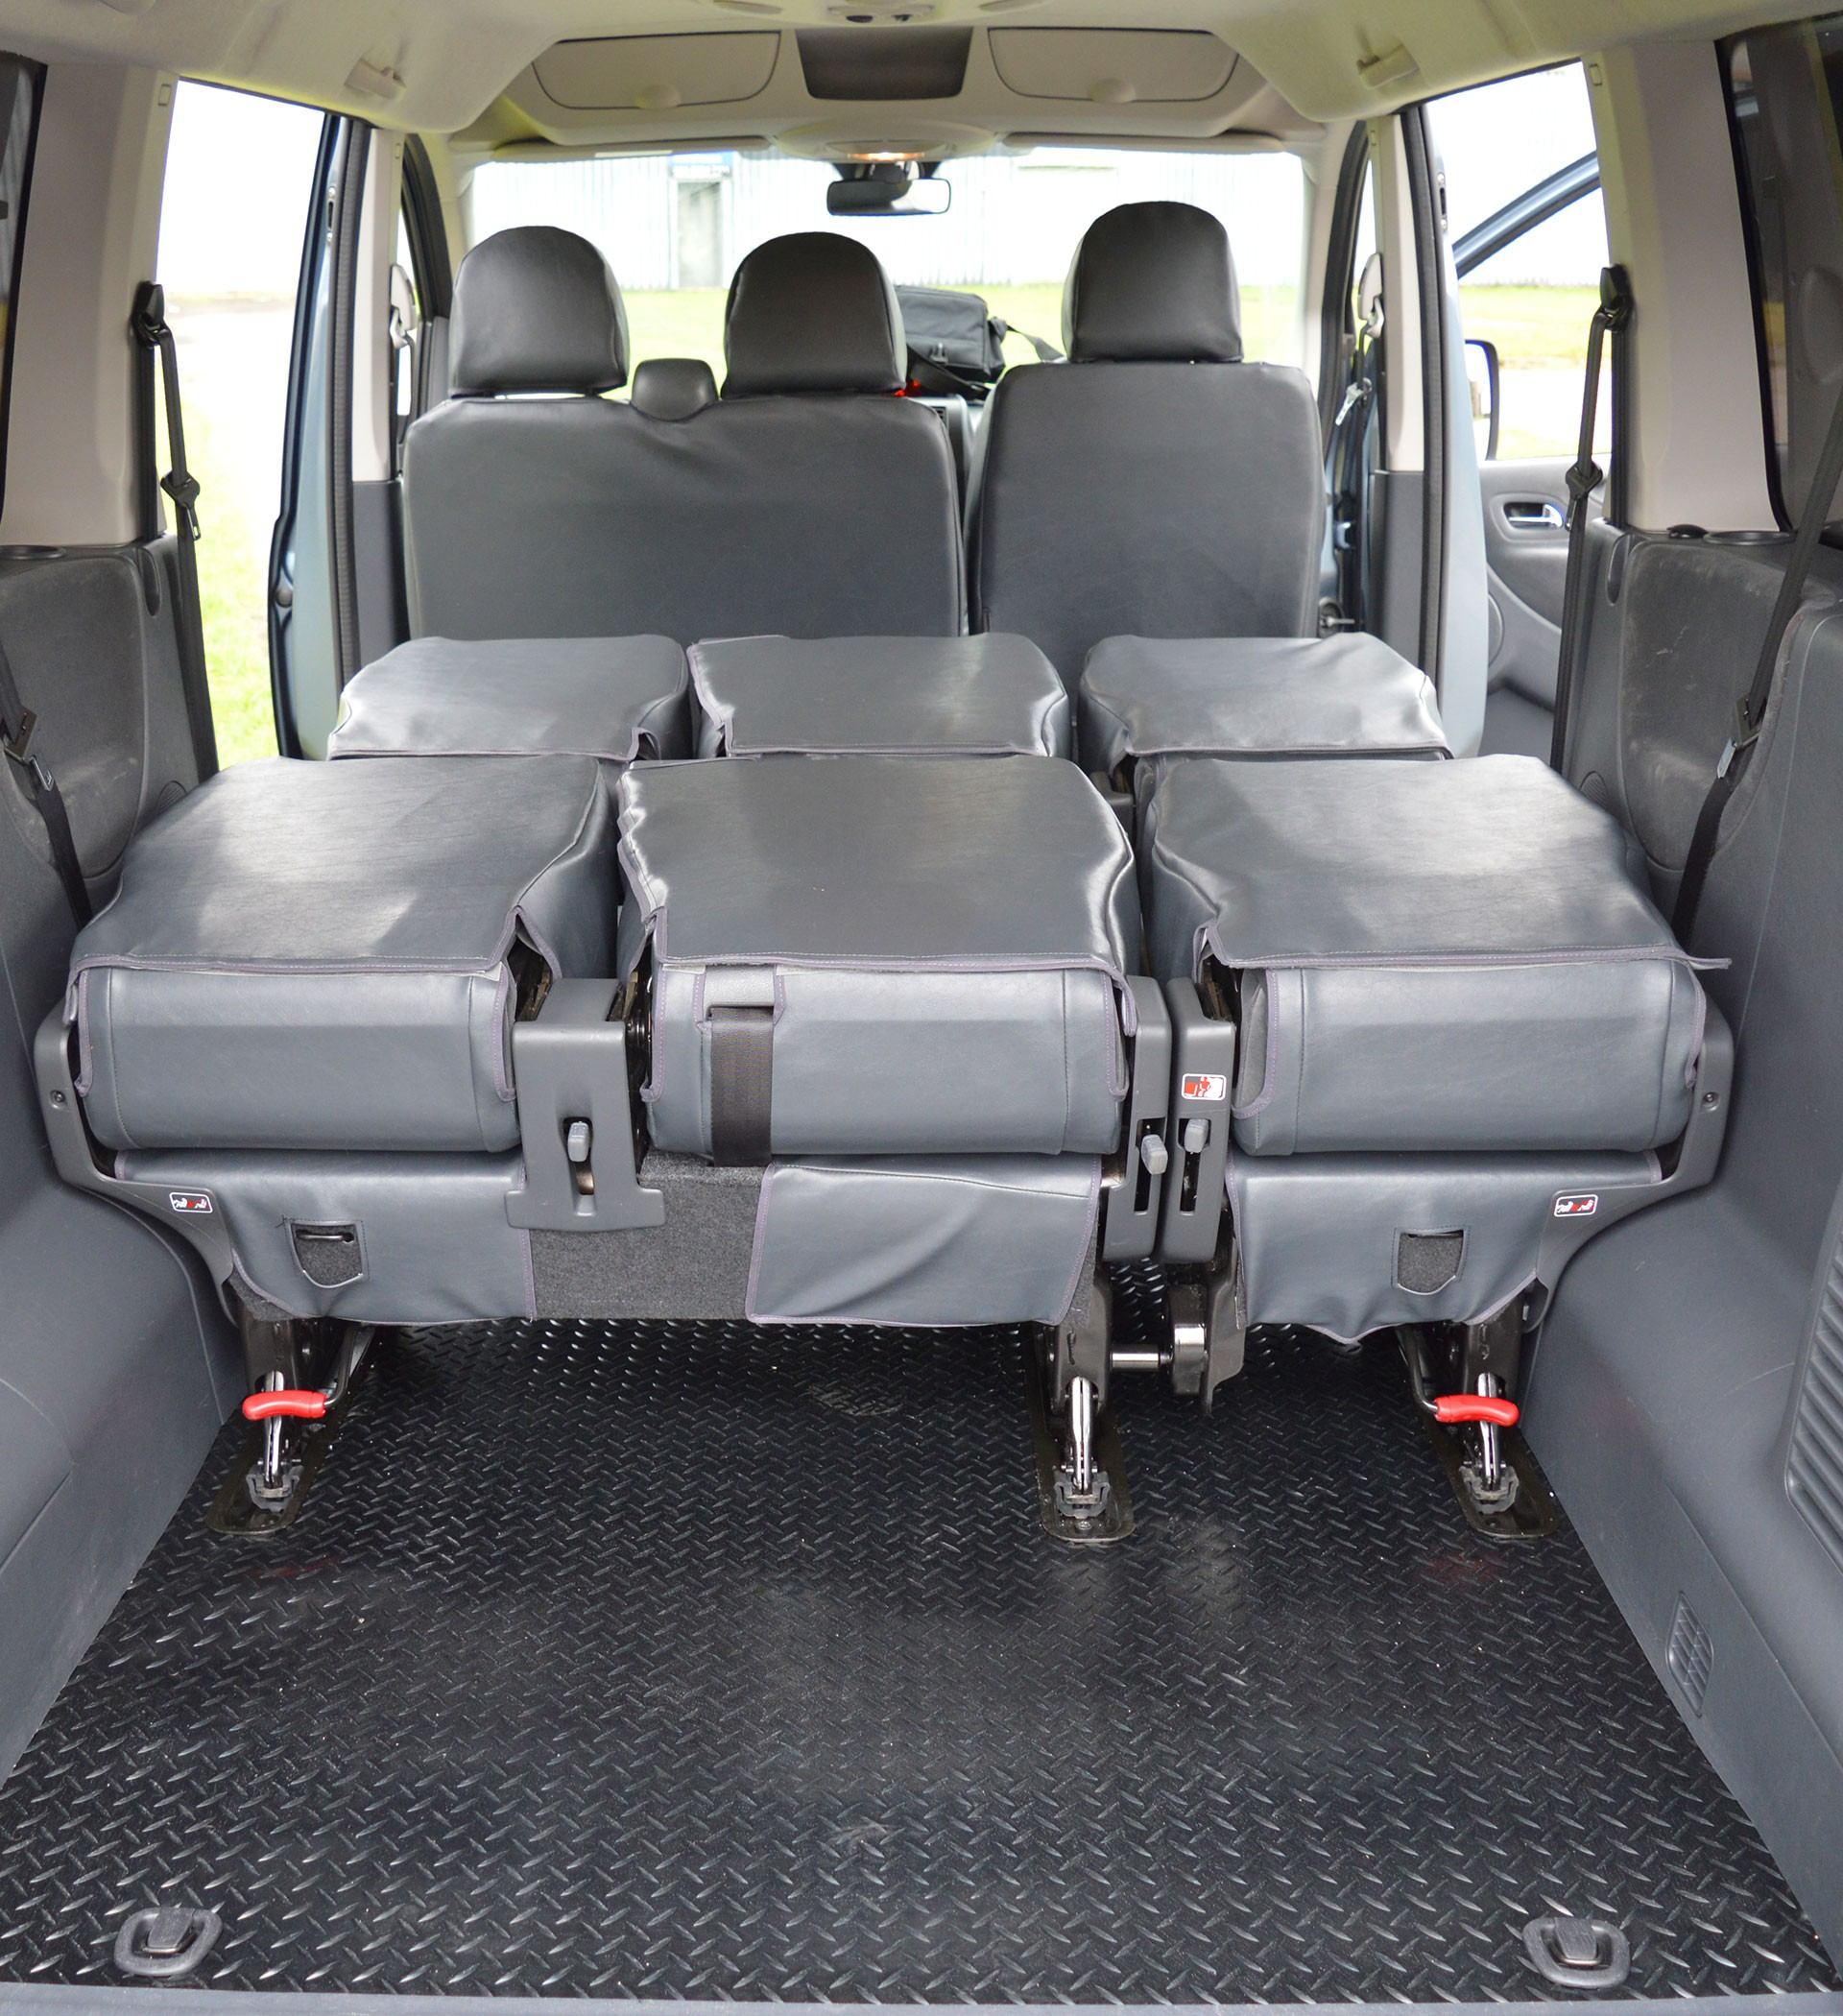 9 Seater Car >> Toyota Proace 9 Seat Waterproof Tailored Van Seat Covers